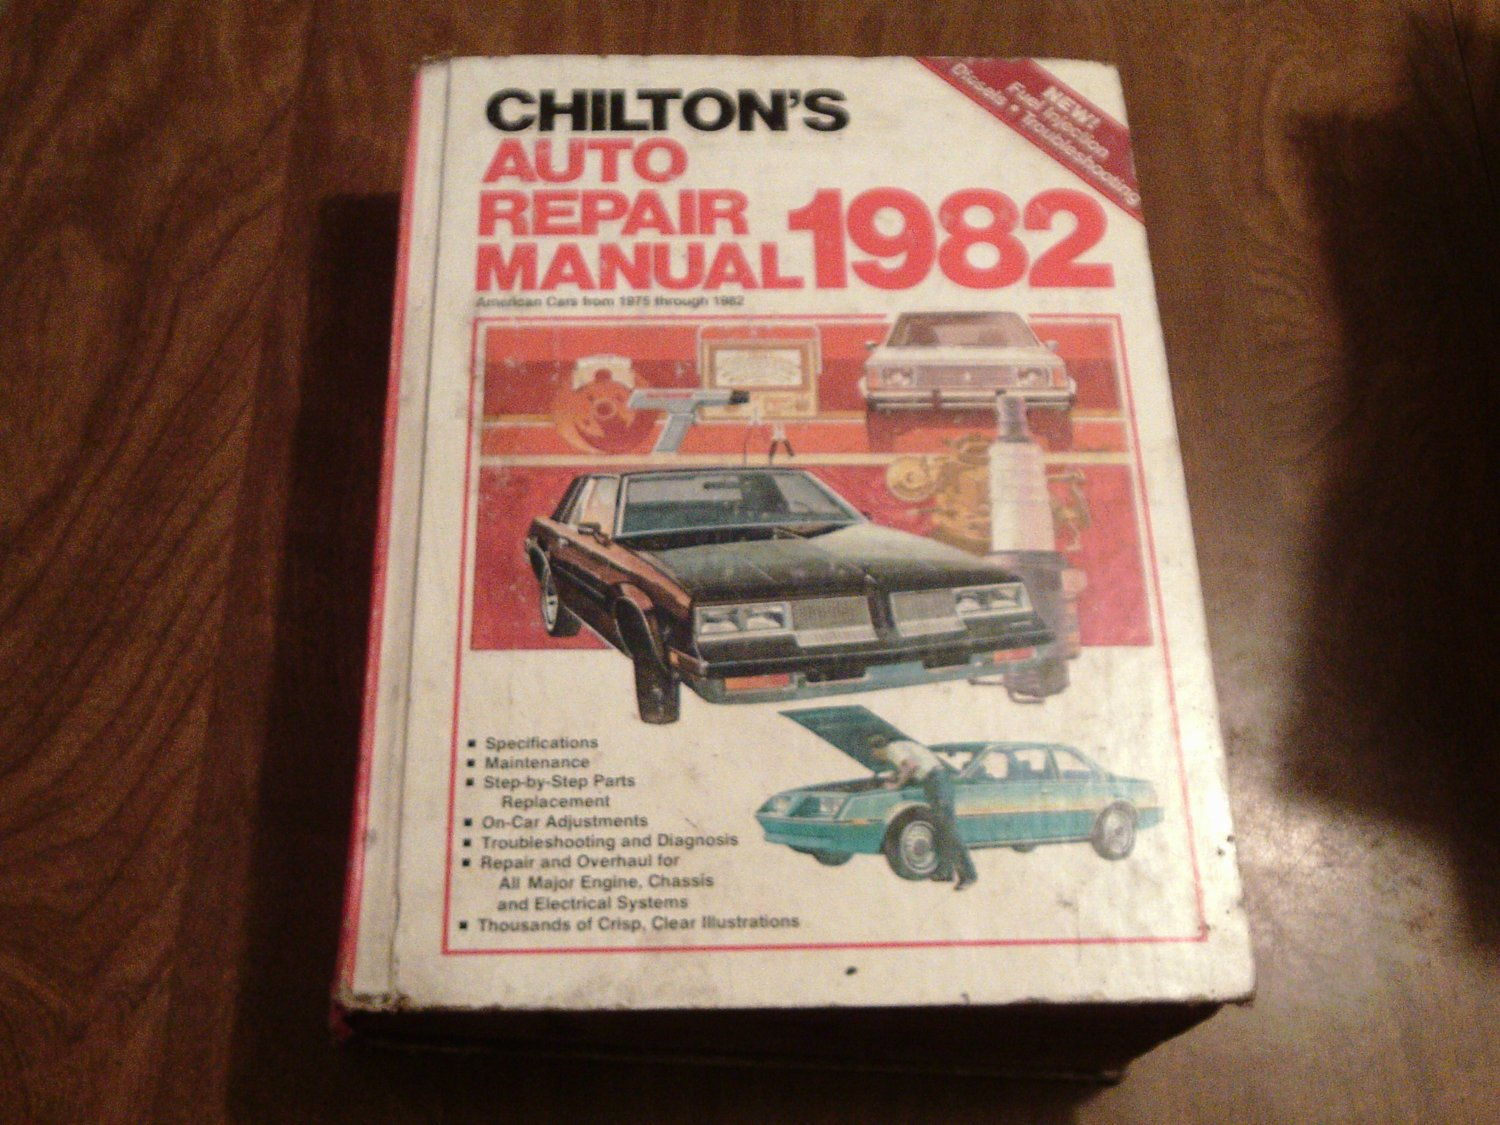 Chilton's Auto Repair Manual 1982 American Cars from 1975 through 1982  #7052 (JA)